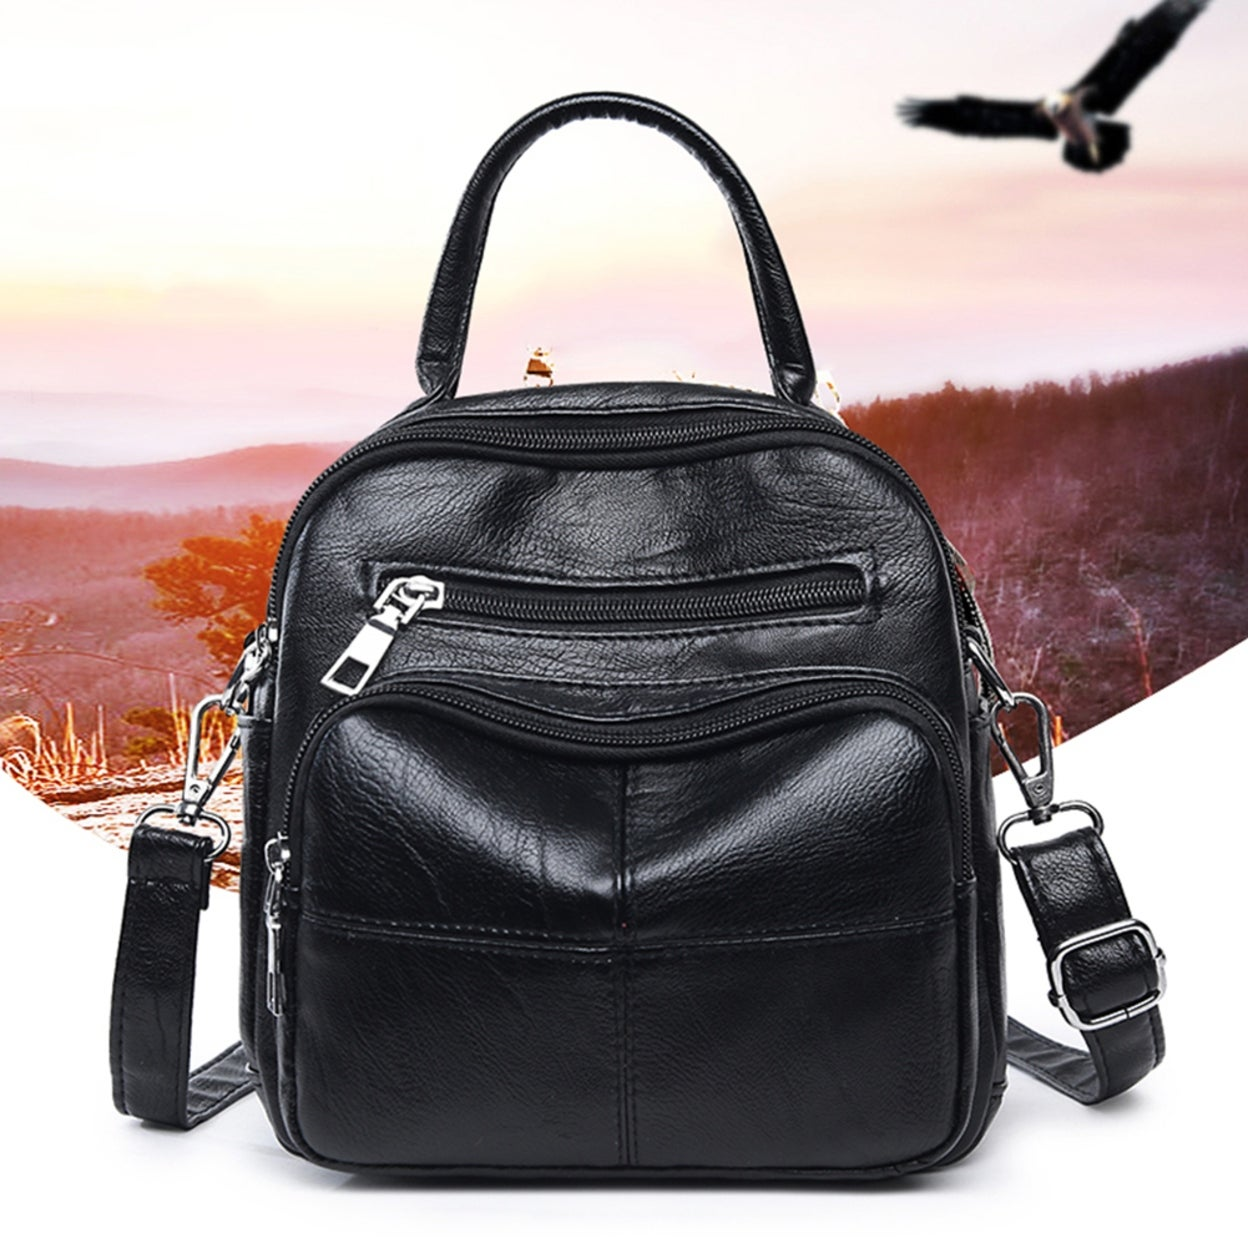 ff168a9879 Shop Women Fashion Faux Leather Zipper Backpack Travel School Shoulder Bag  Handbag - Free Shipping On Orders Over  45 - Overstock - 23175238